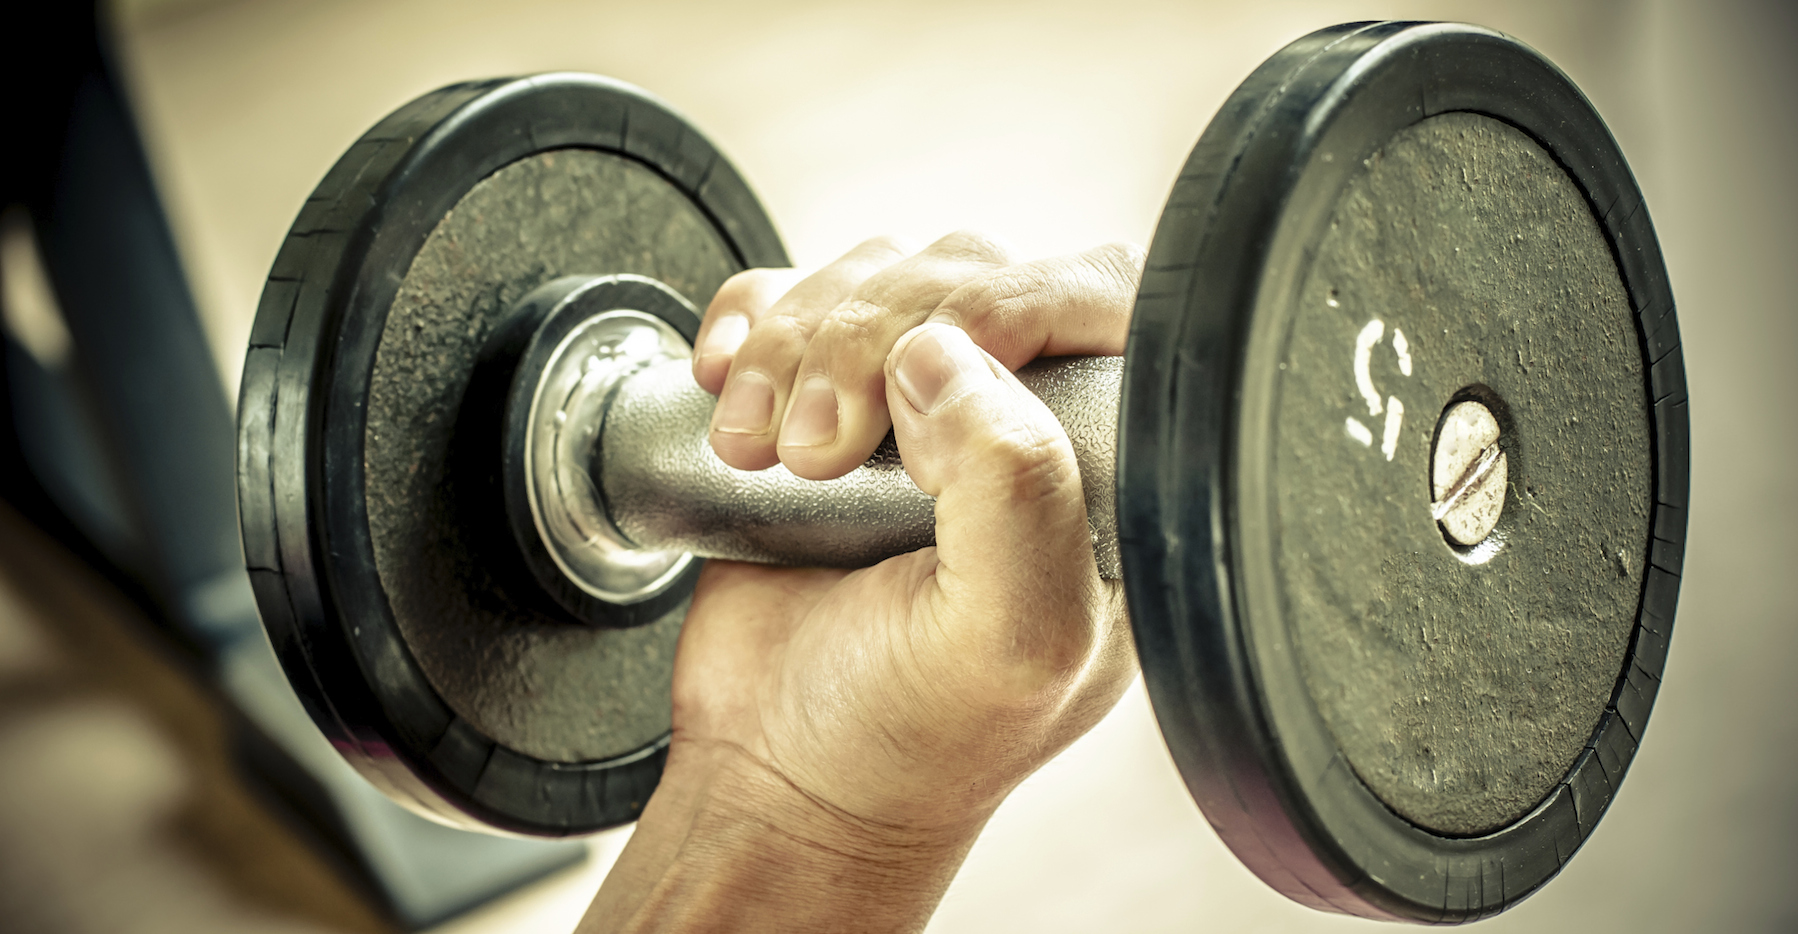 strong man's hand takes a heavy dumbbell